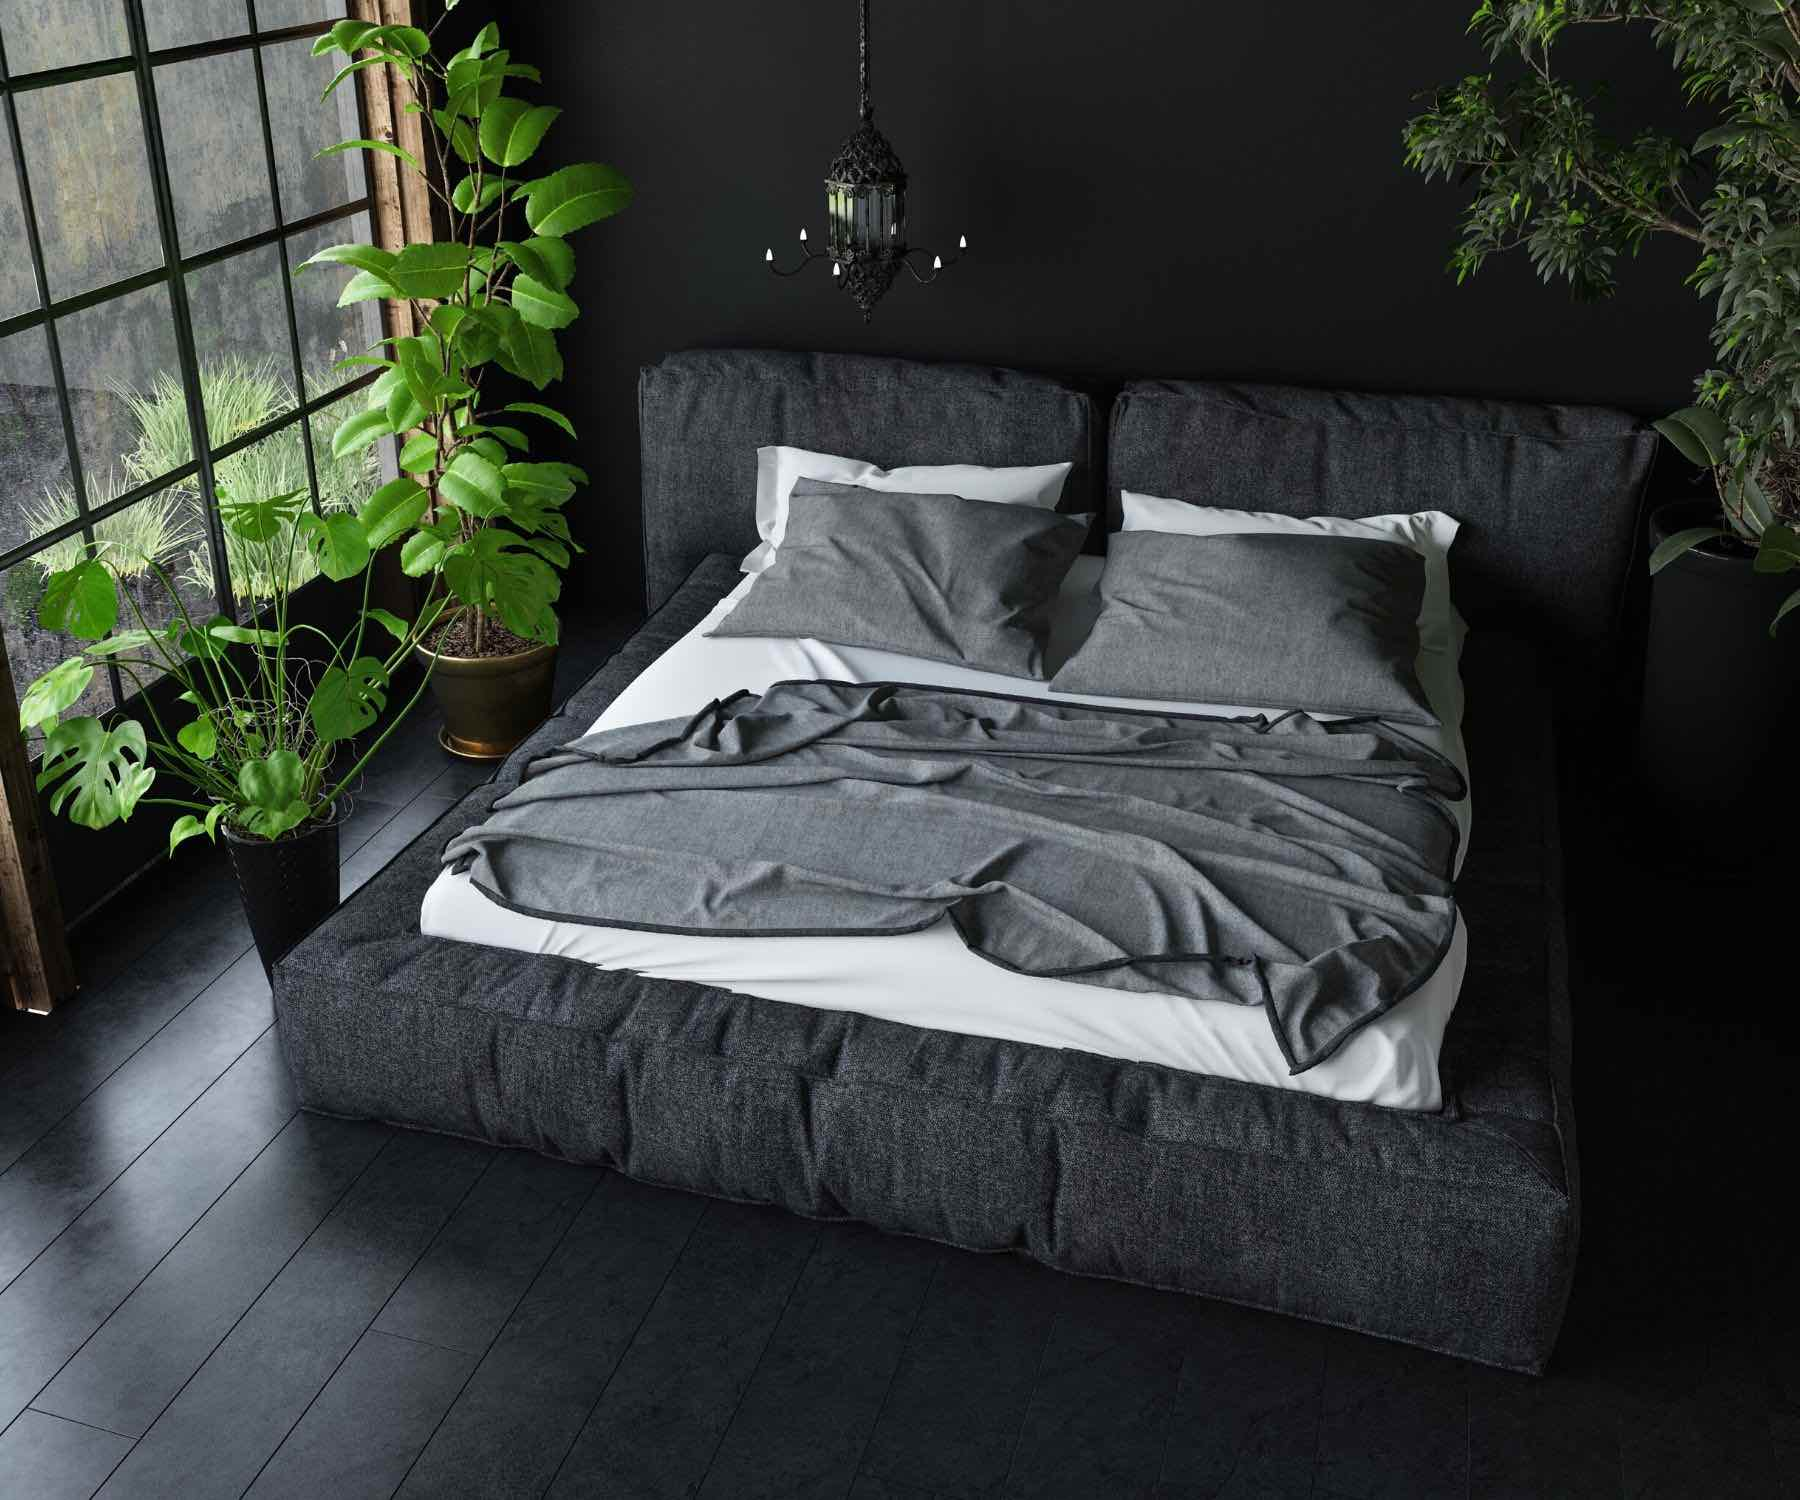 Dark bedding in dark bedroom